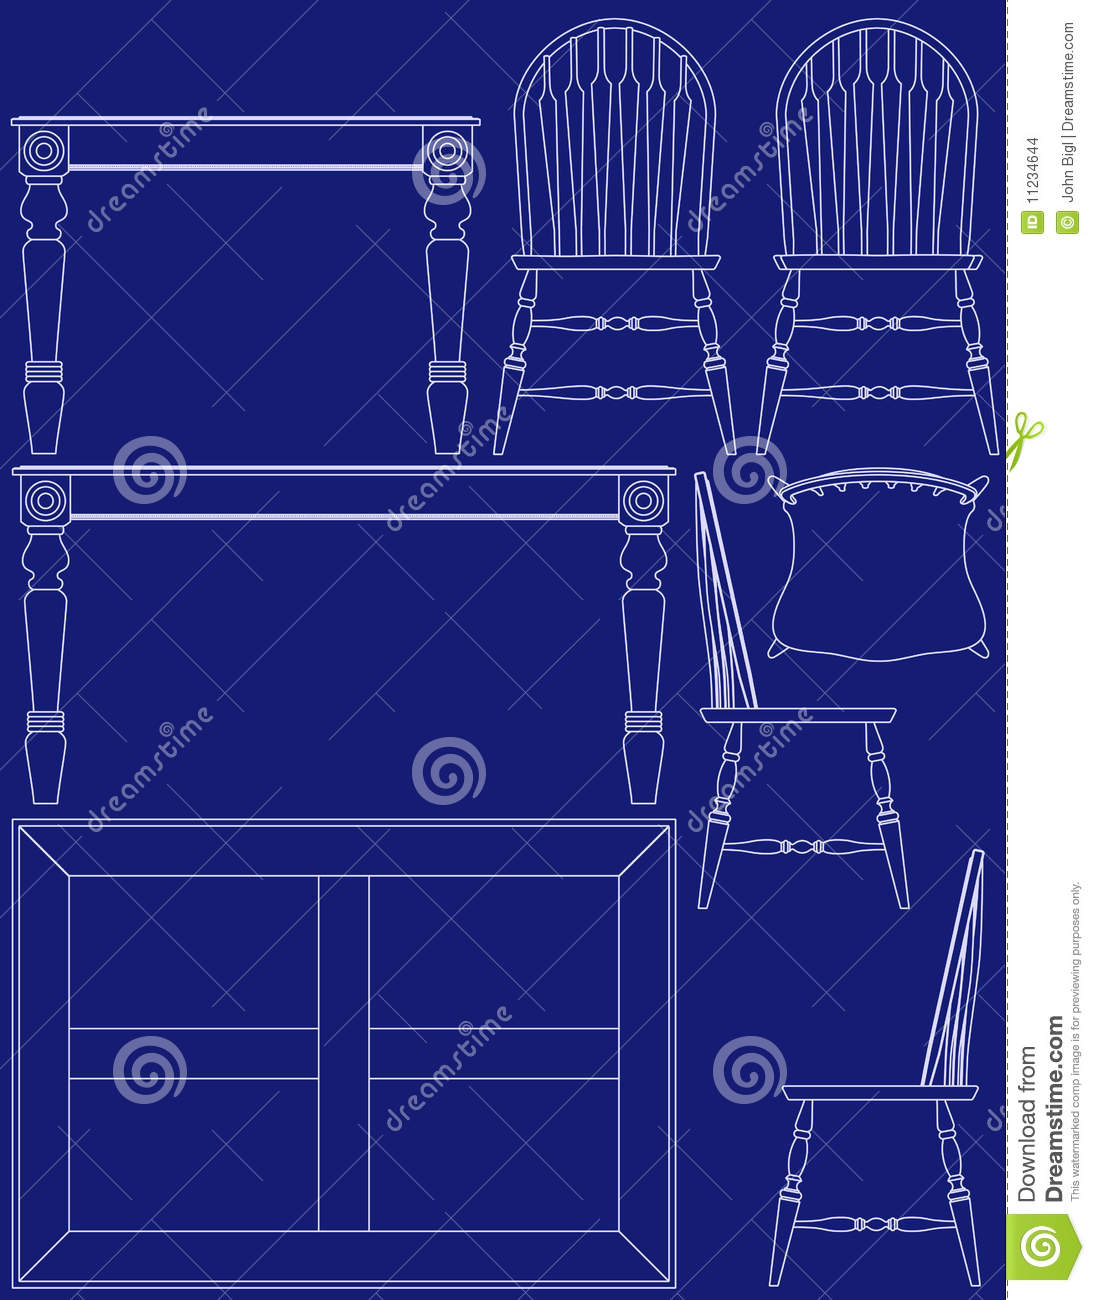 Blueprint dining room furniture stock vector illustration of download comp malvernweather Image collections